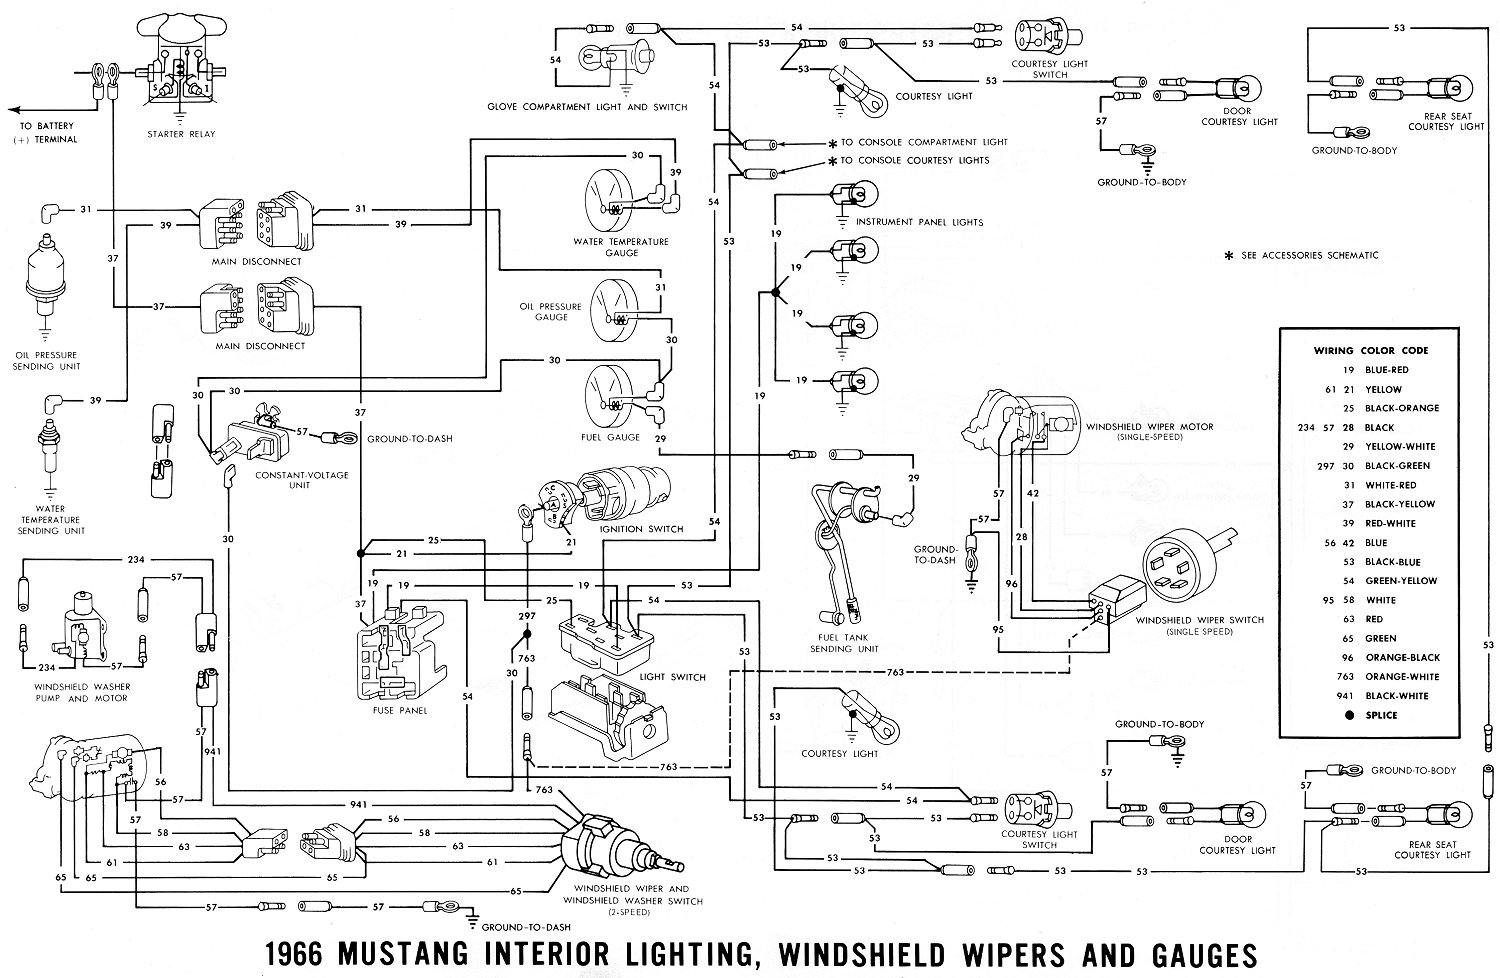 1966 mustang dash wiring diagram wire center u2022 rh linxglobal co mustang wiring diagram 1965 1969 mustang wiring diagram